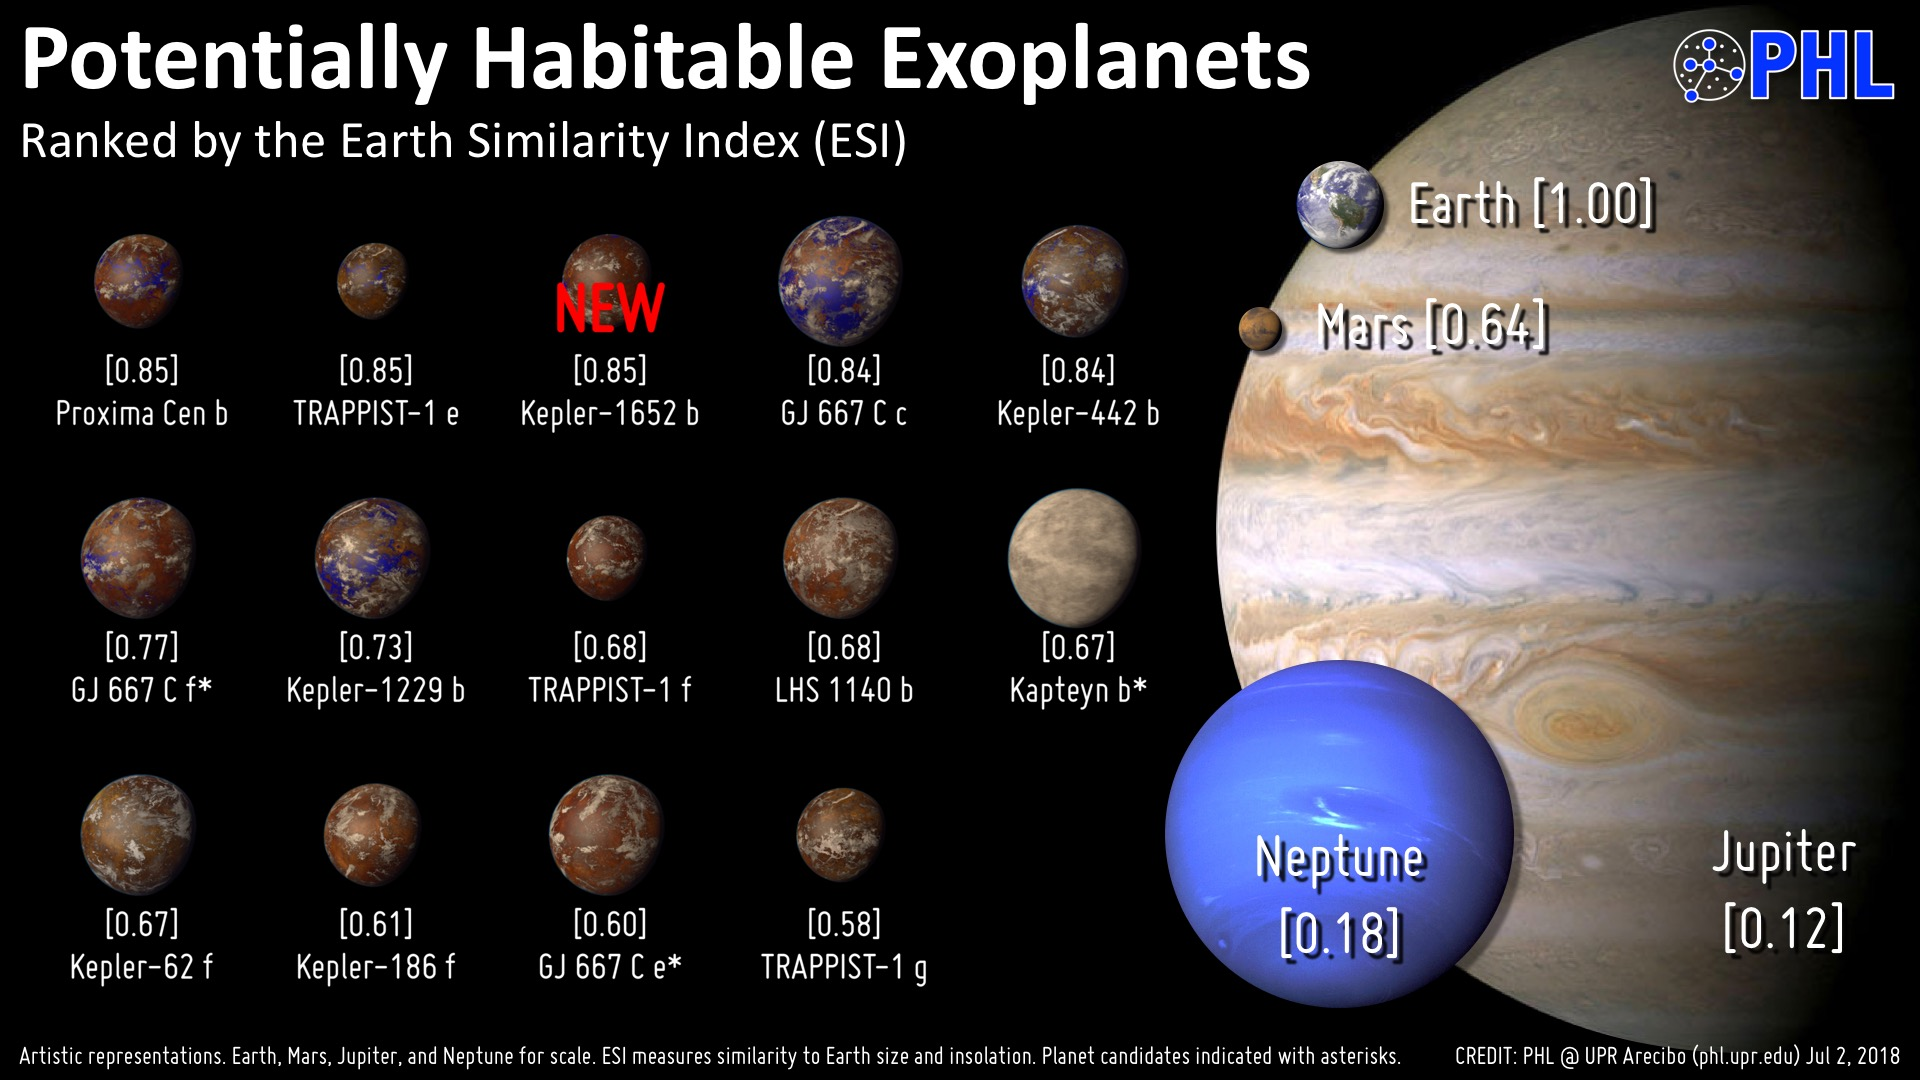 Exoplanets (planets around other stars) ranked by researchers at the  Planetary Habitability Lab at